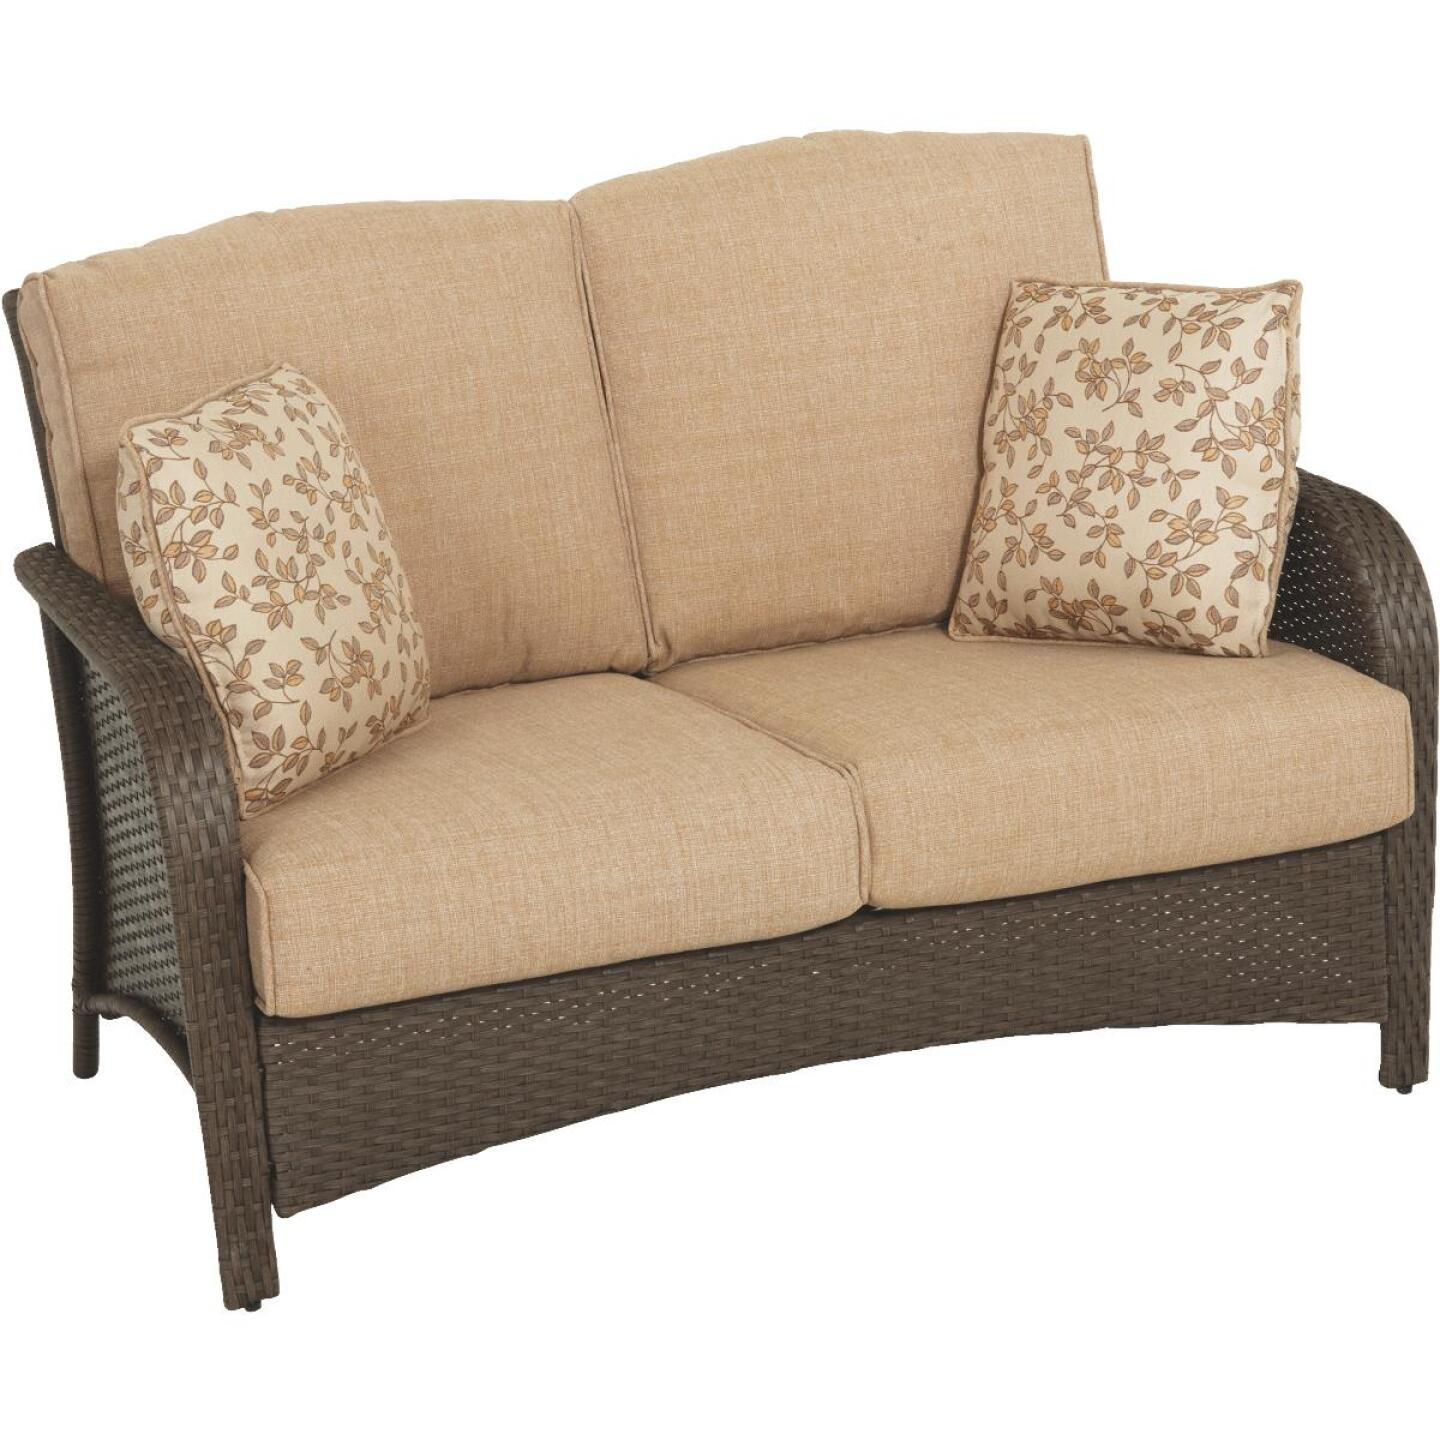 Pacific Casual Tiara Garden 2-Person Love Seat with Coffee Table Image 6